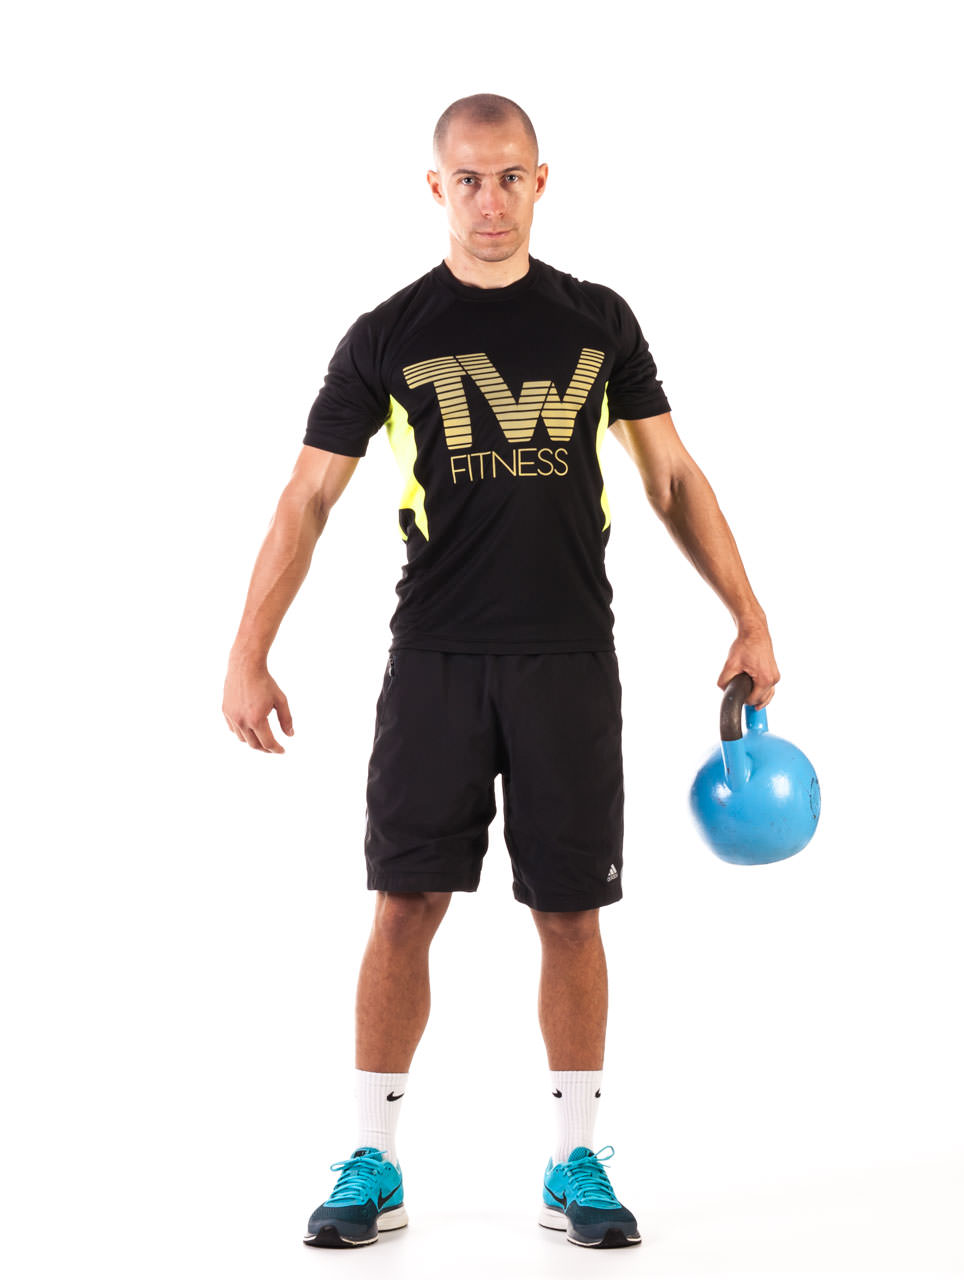 Kettlebell Around the Body frame #4